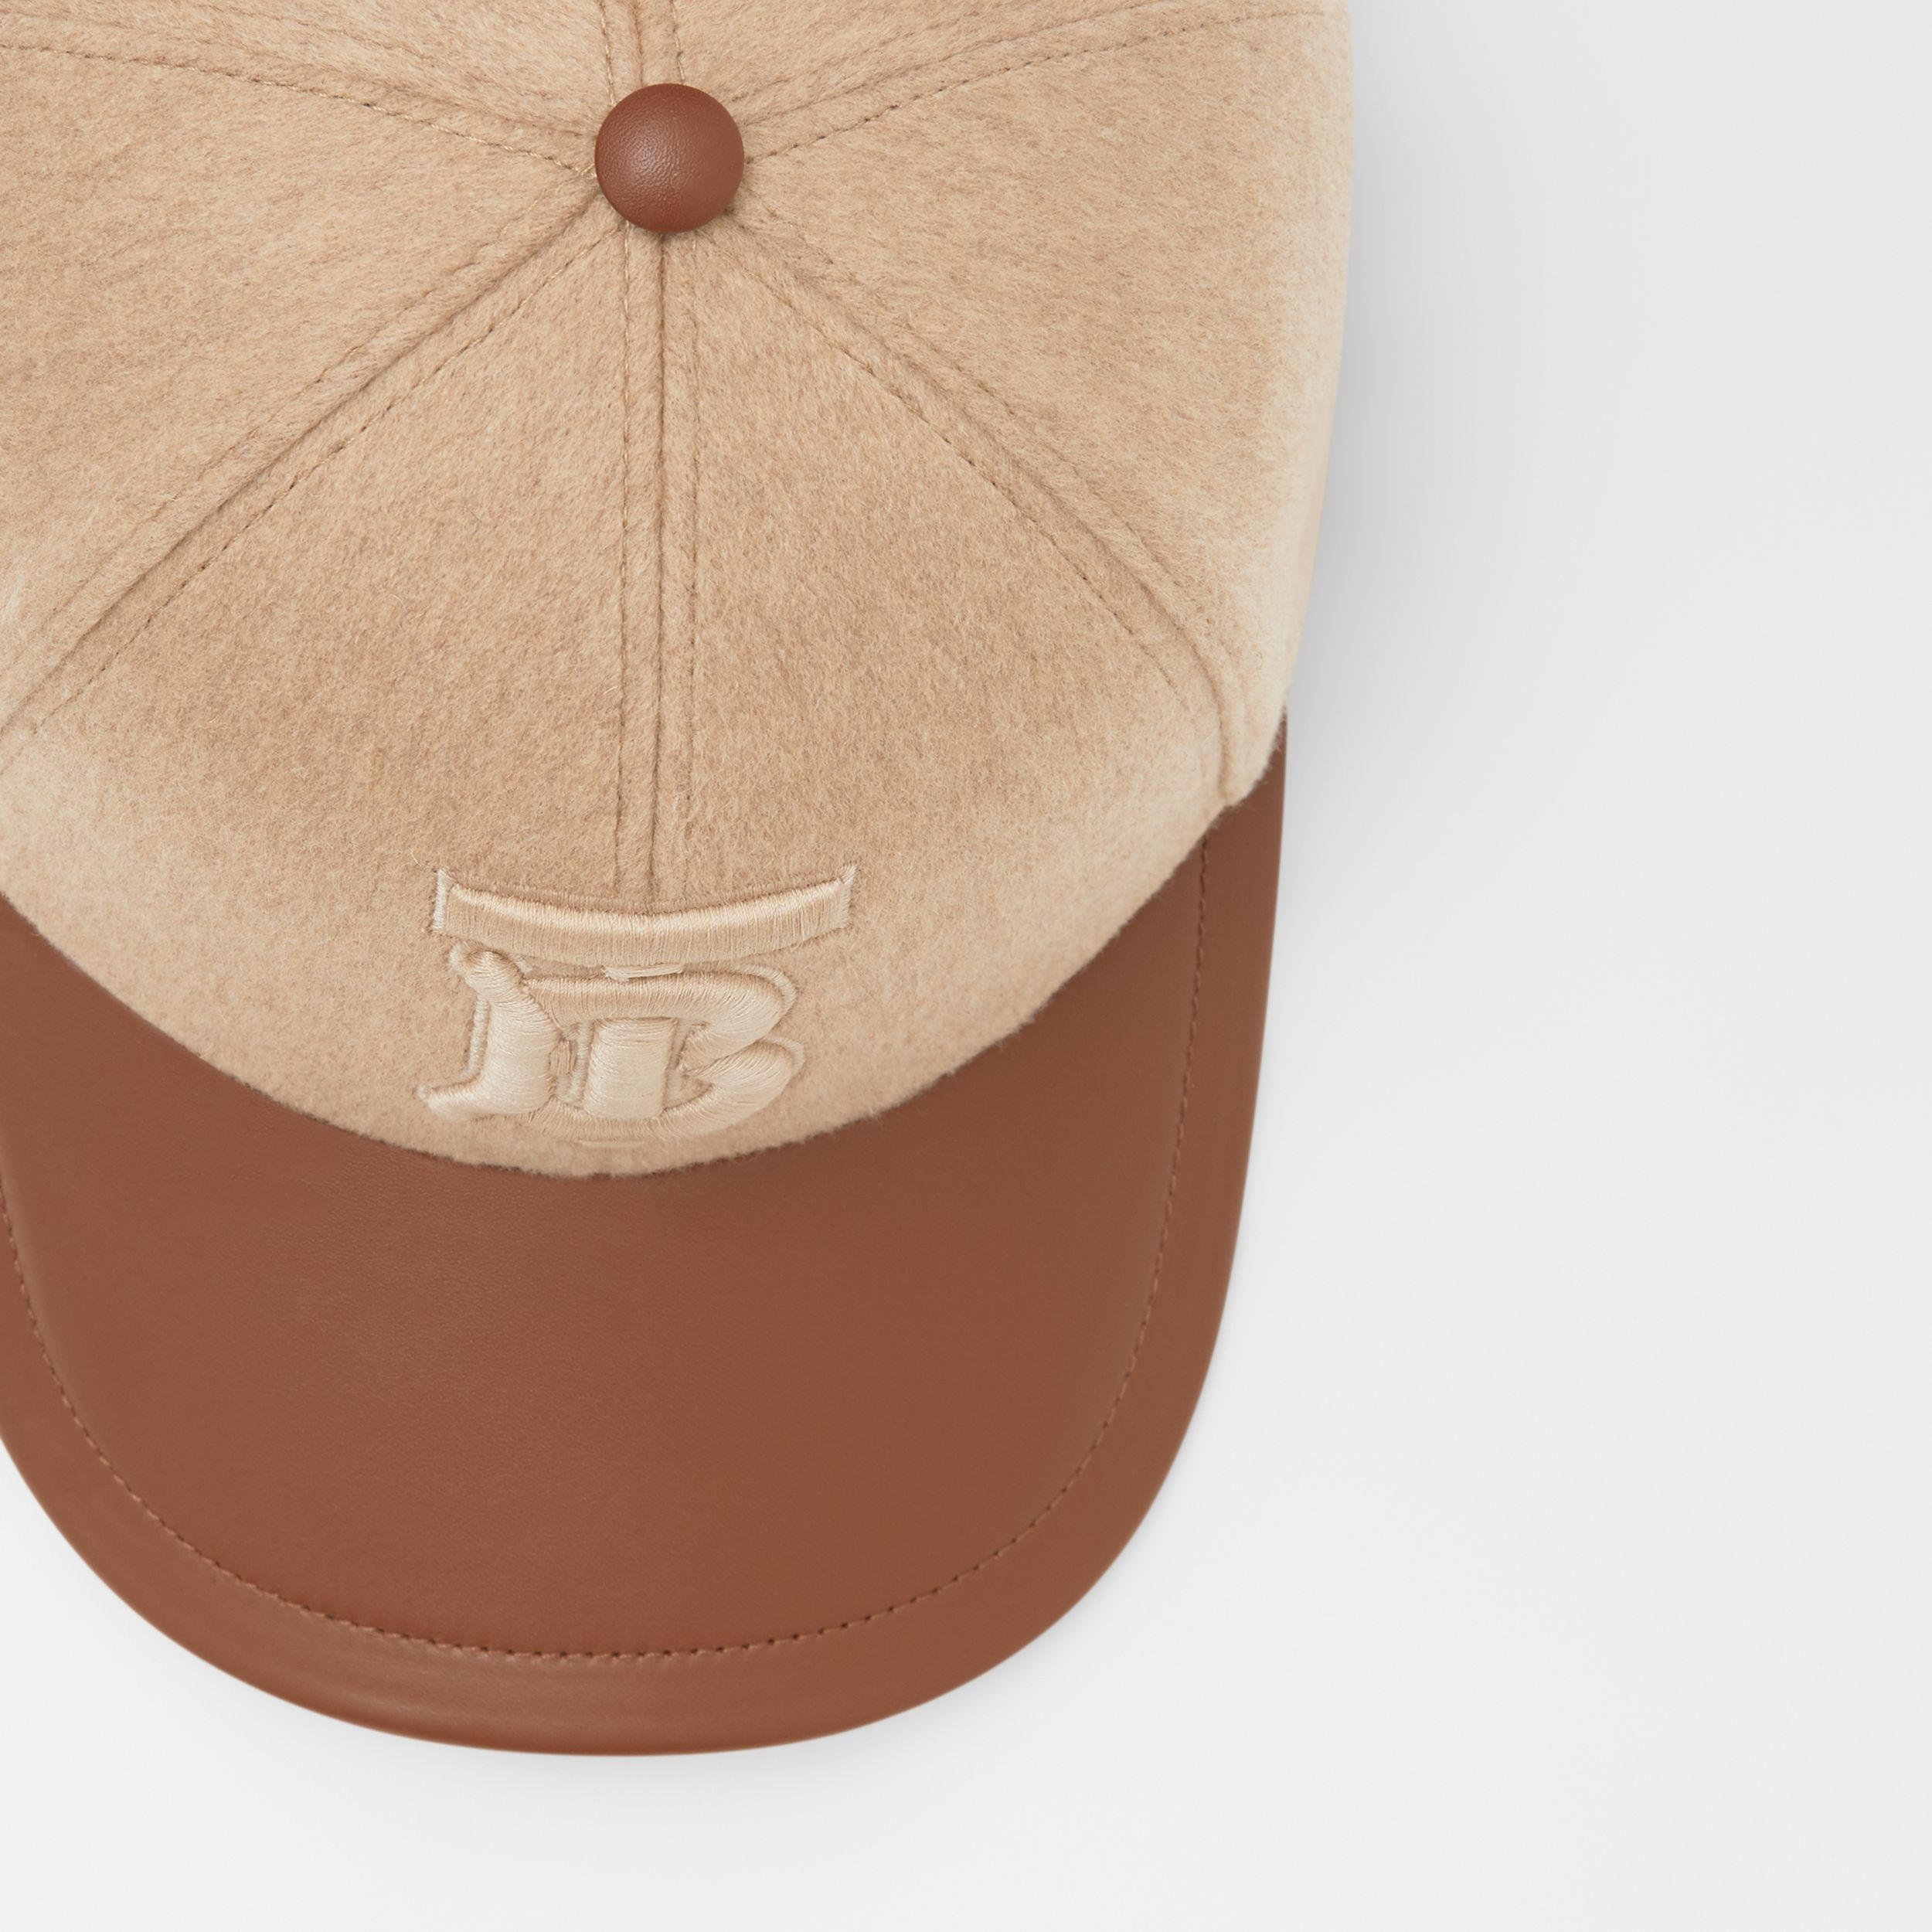 Monogram Motif Cashmere and Leather Baseball Cap in Camel | Burberry Canada - 2